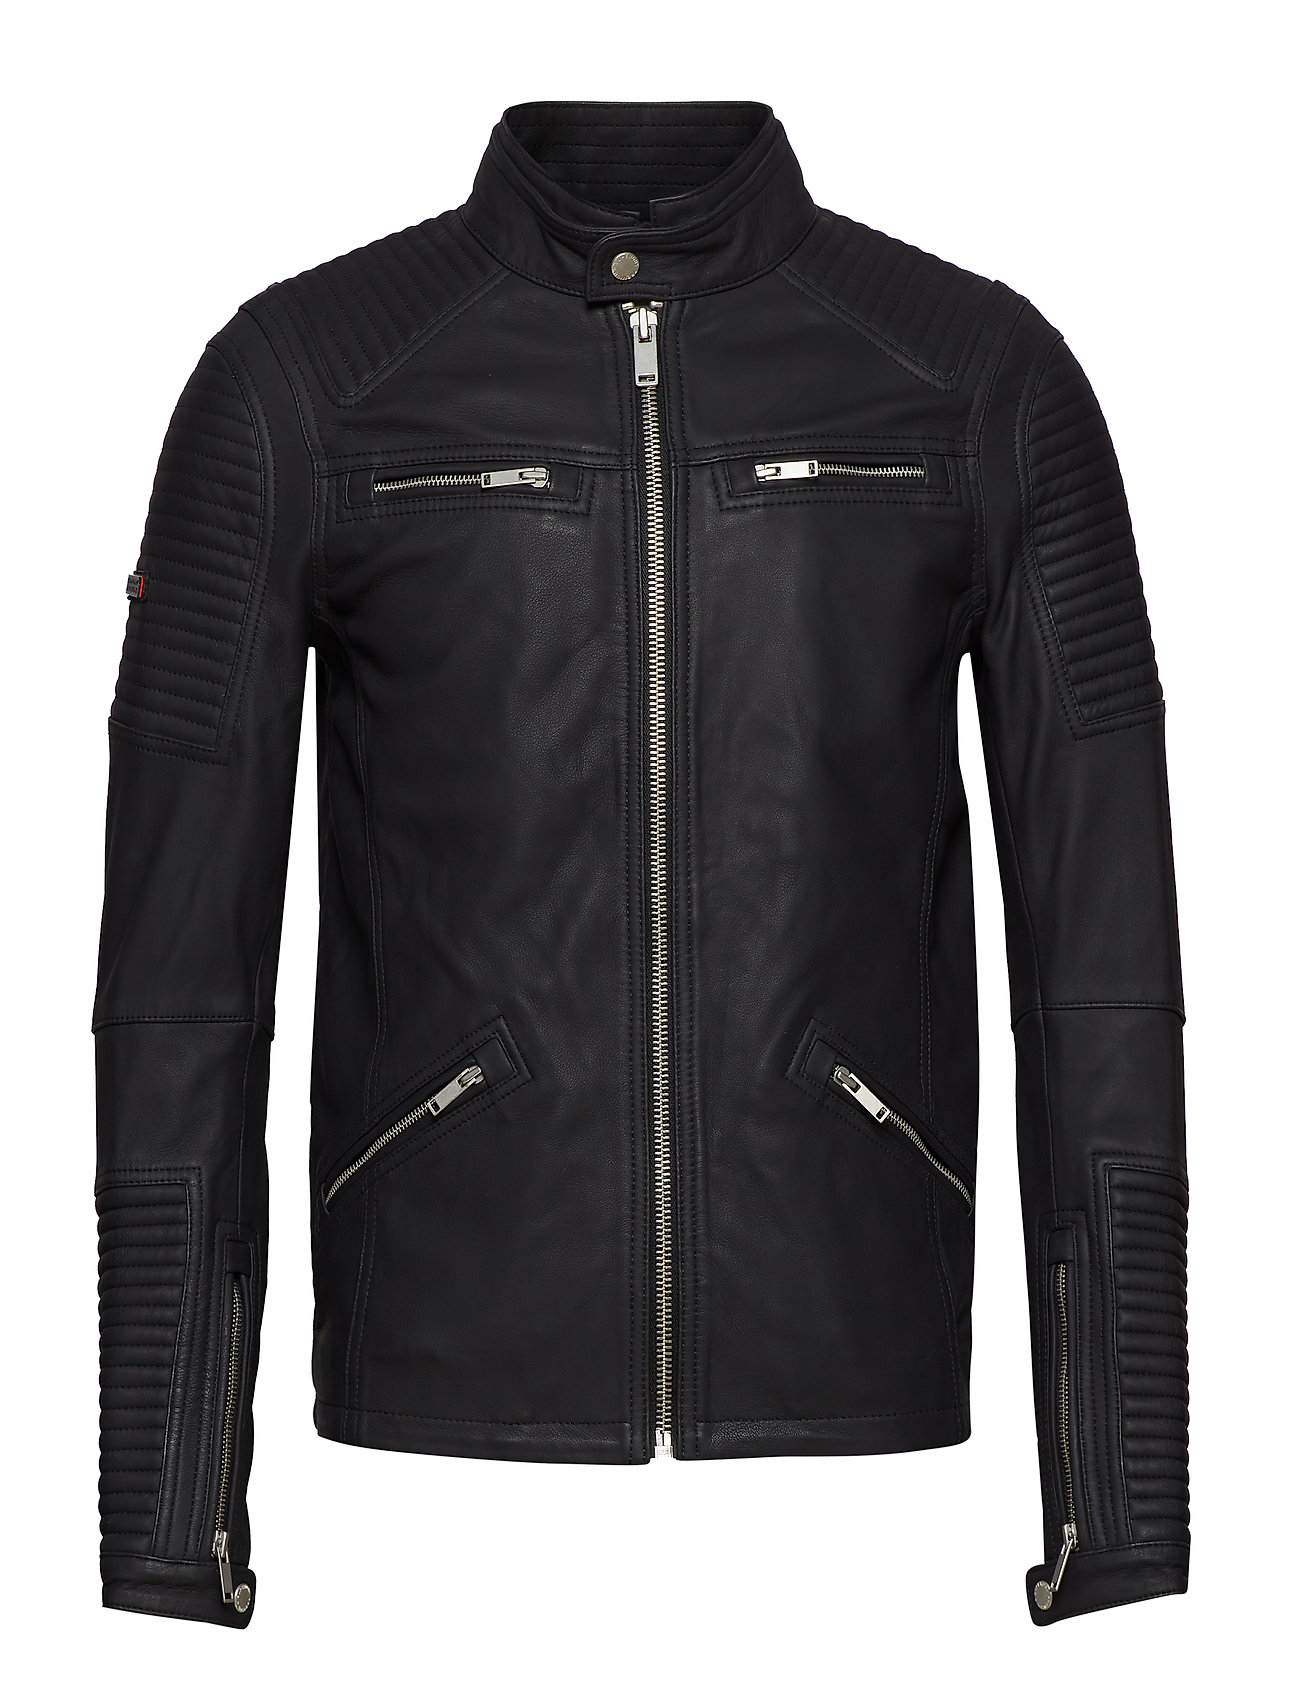 Superdry PREMIUM LEATHER RACER JACKET - BLACK